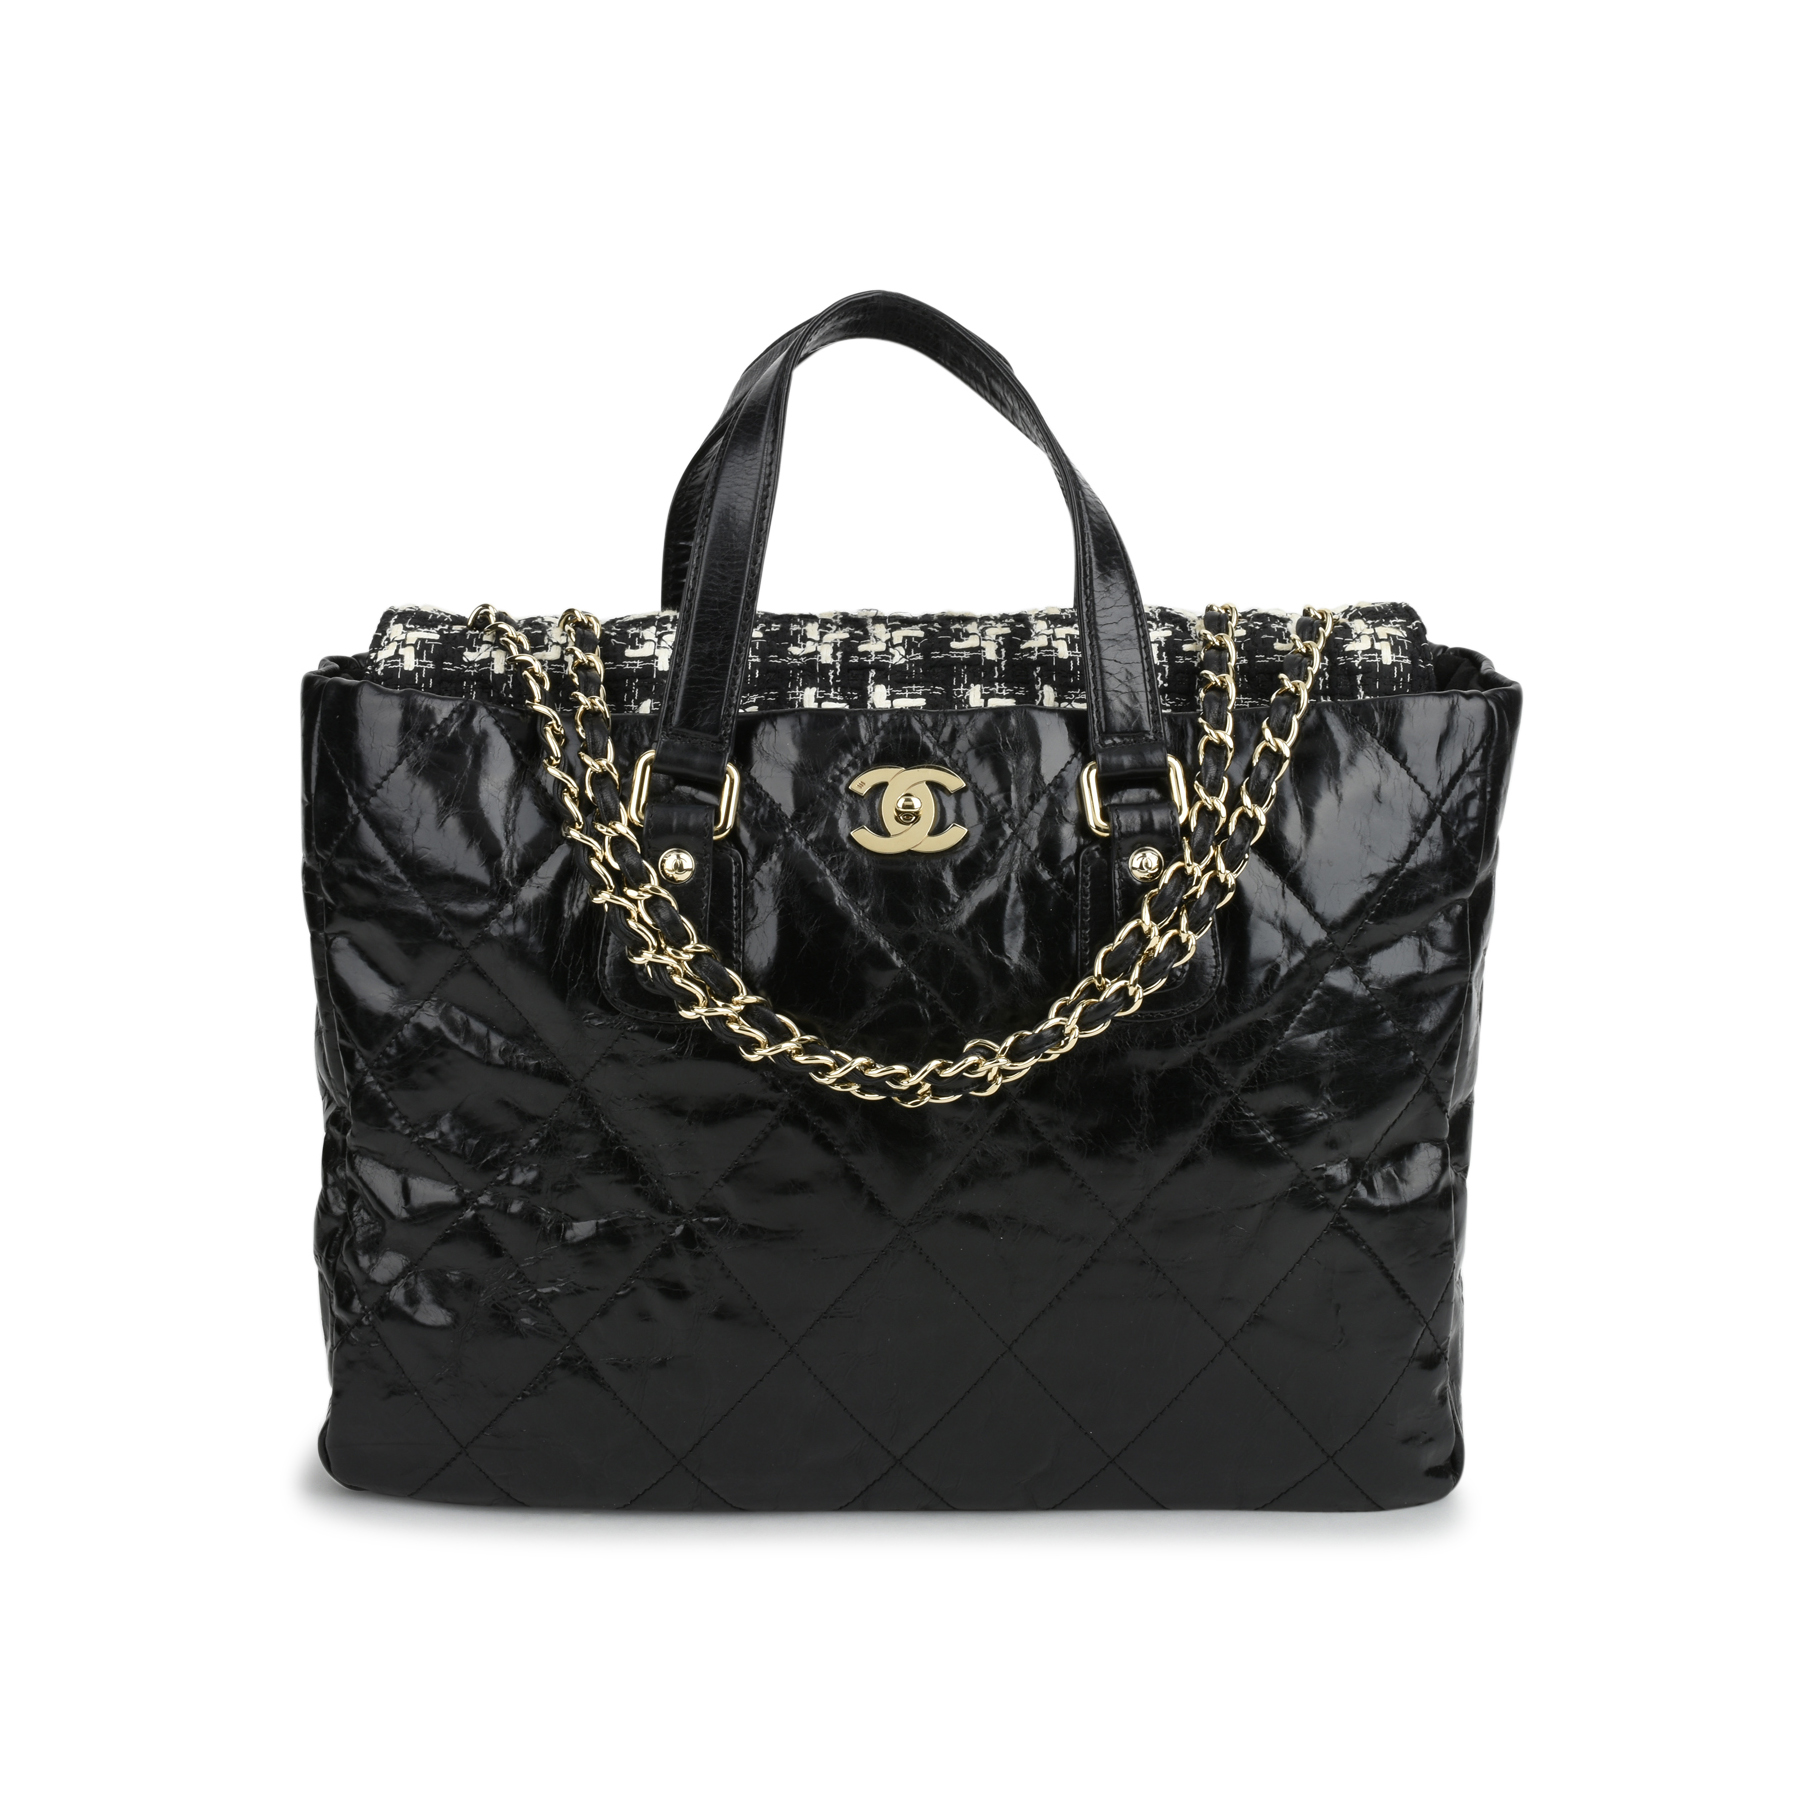 545df3d7f9e5 Authentic Second Hand Chanel Glazed Calfskin Tweed Portobello Tote Bag  (PSS-200-01075) | THE FIFTH COLLECTION